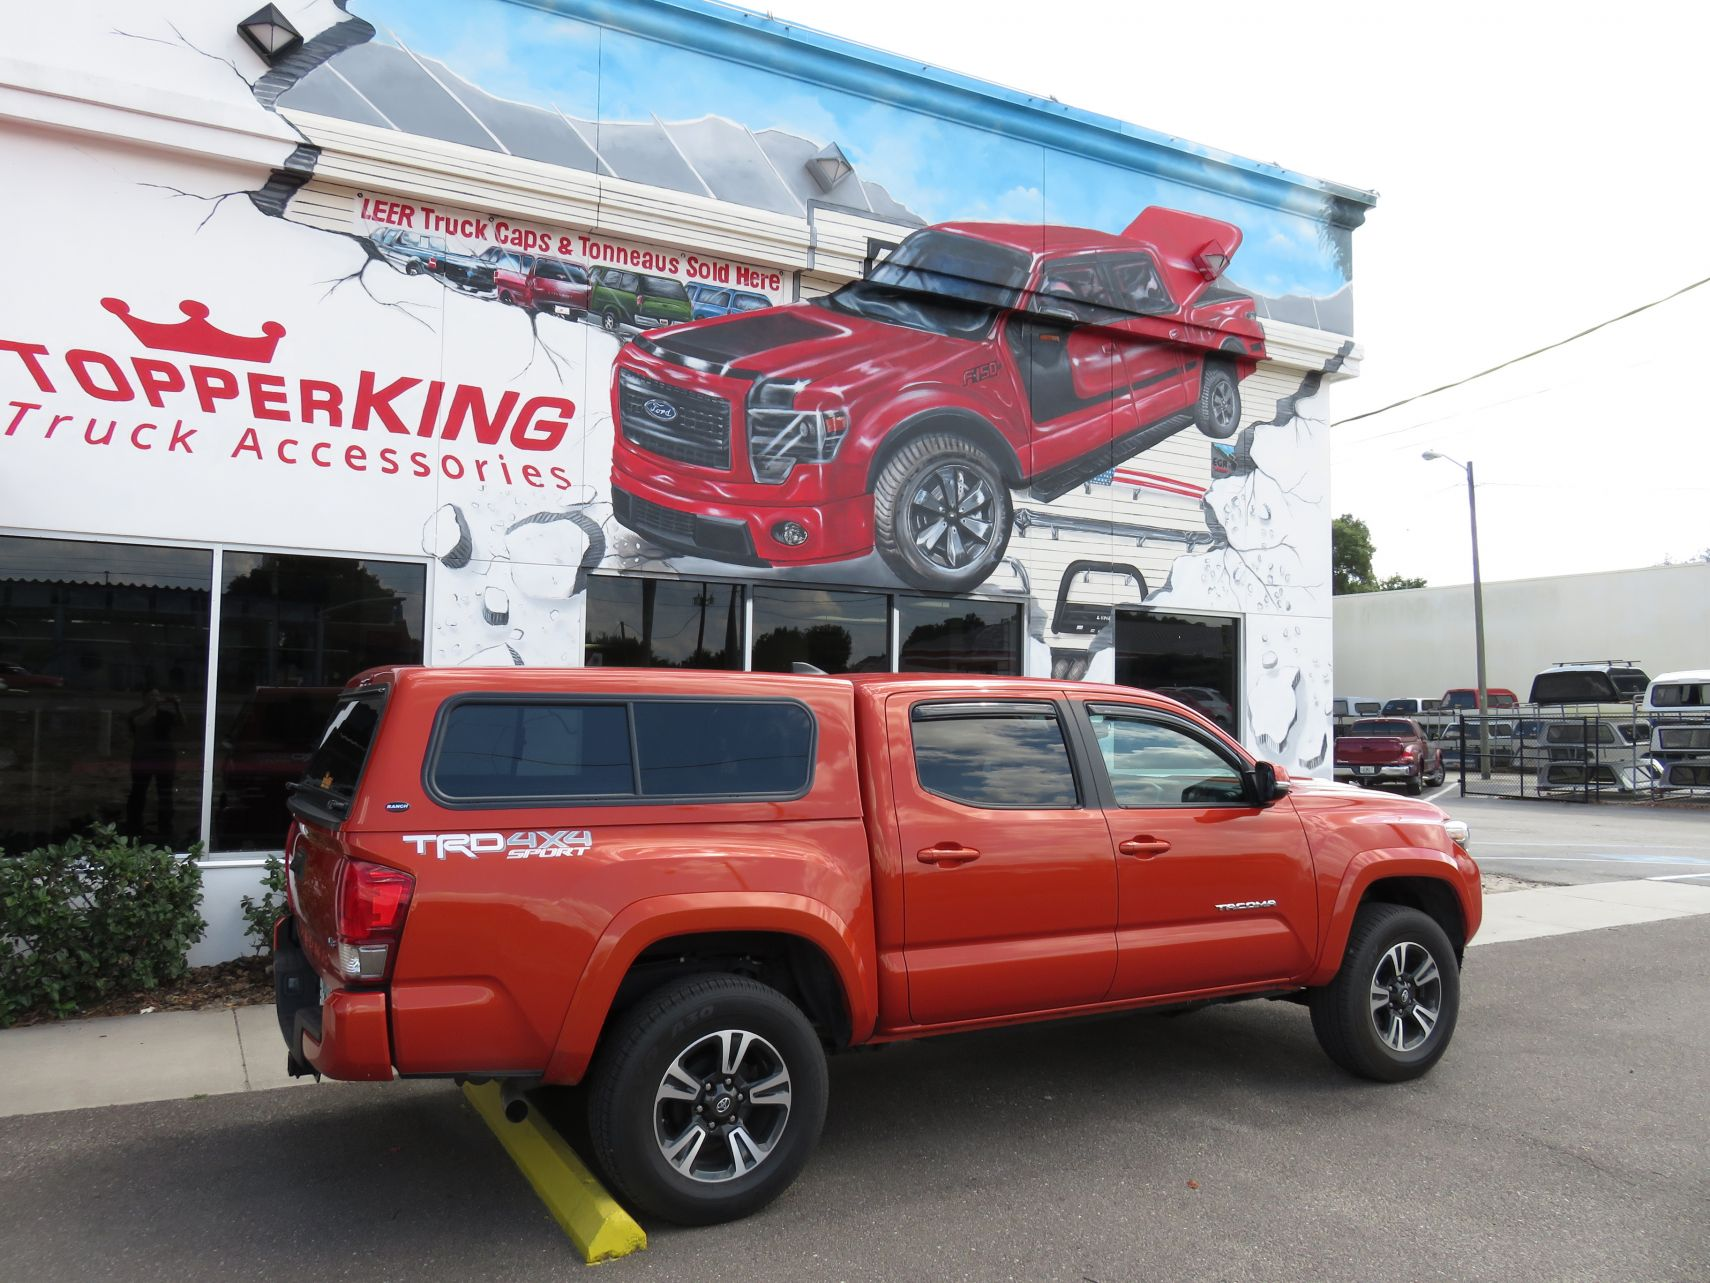 2017 Toyota Tacoma with Ranch Sierra, Hitch, Vent Visors, Bedliner by TopperKING in Brandon, FL 813-689-2449 or Clearwater, FL 727-530-9066. Call today!